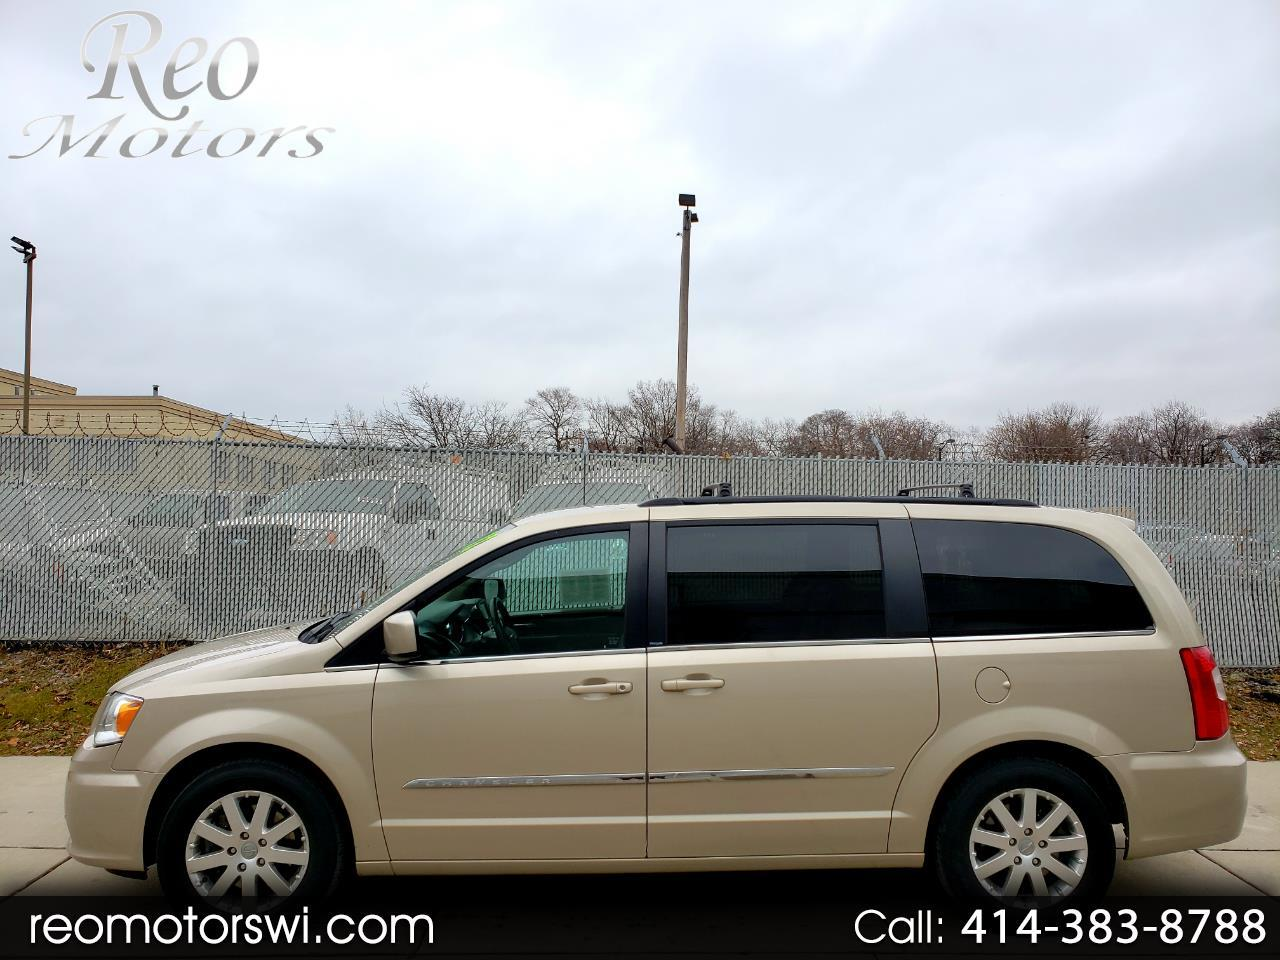 2012 Chrysler Town & Country FWD